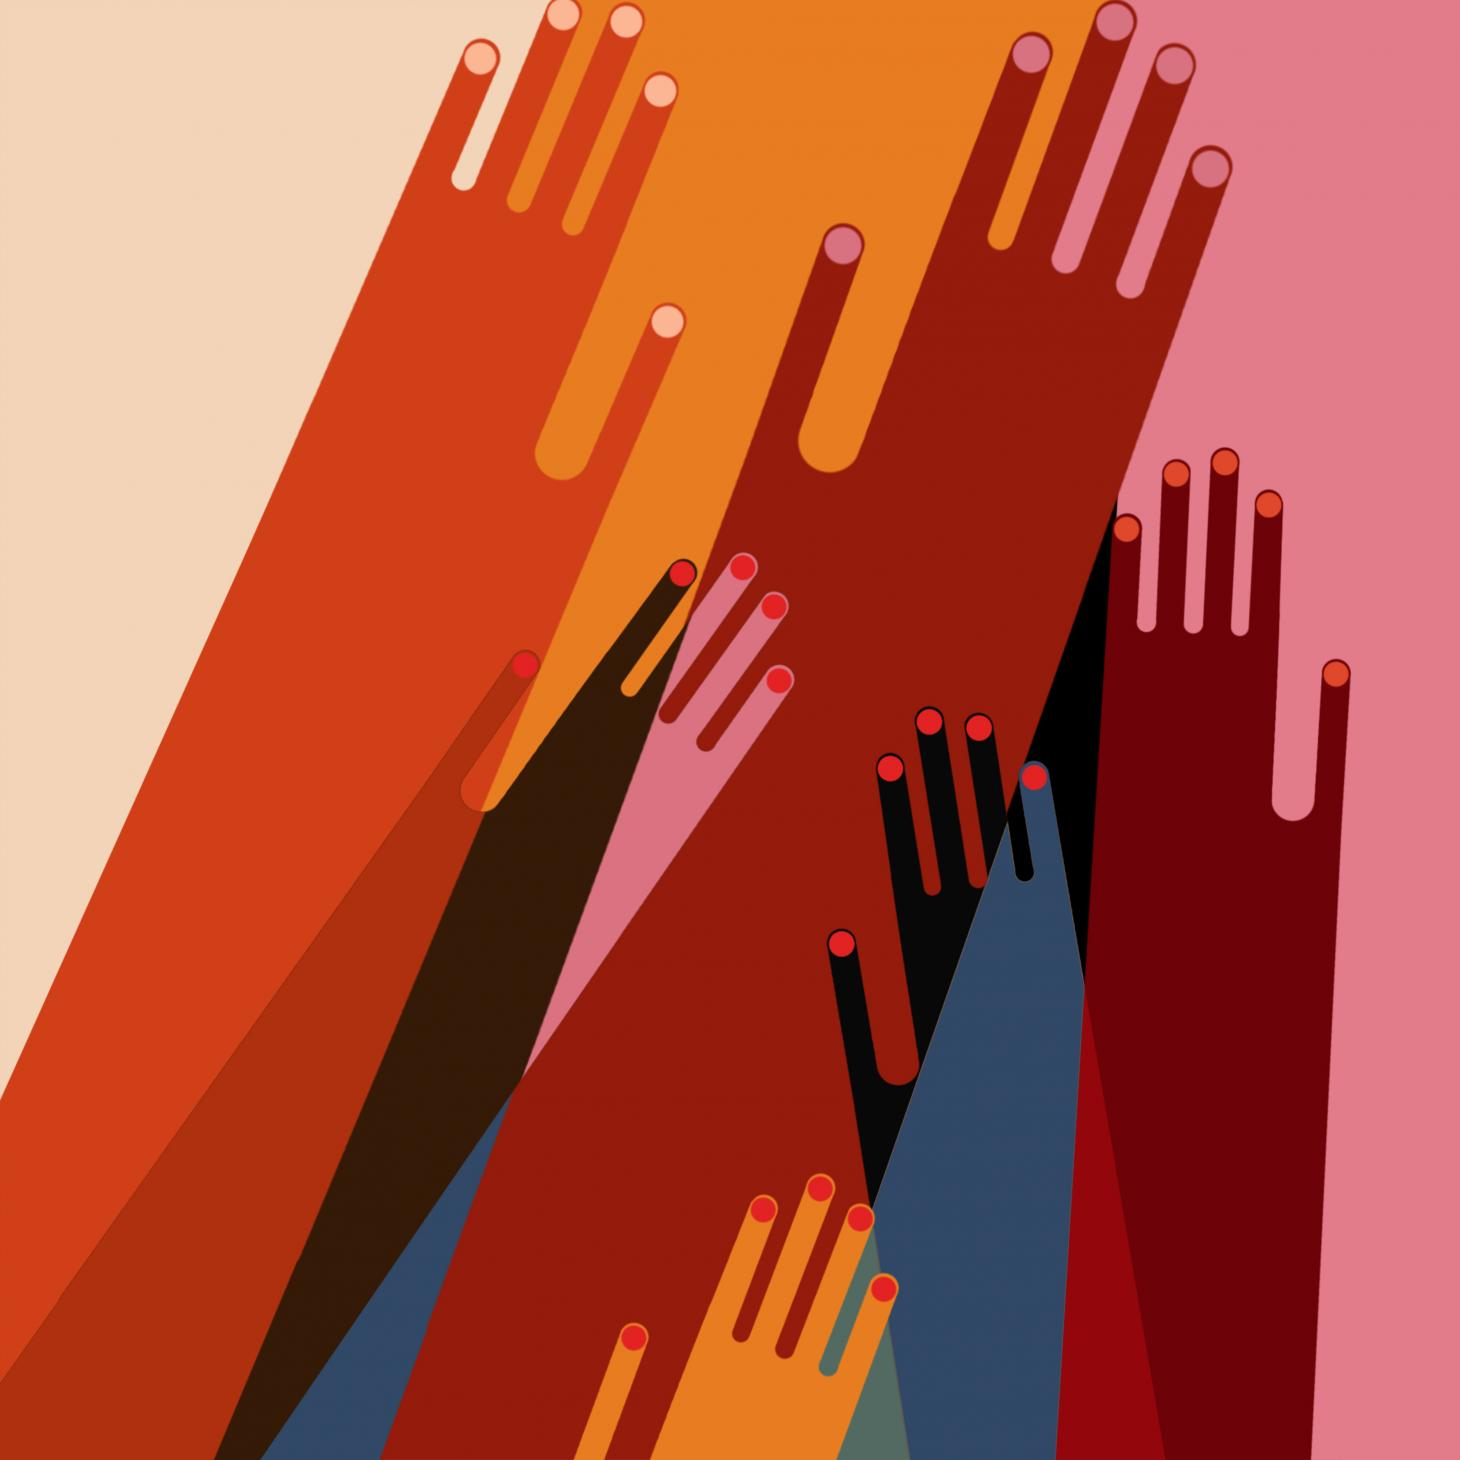 Illustration of hands in different colours intersecting by PL Studio for United in Design